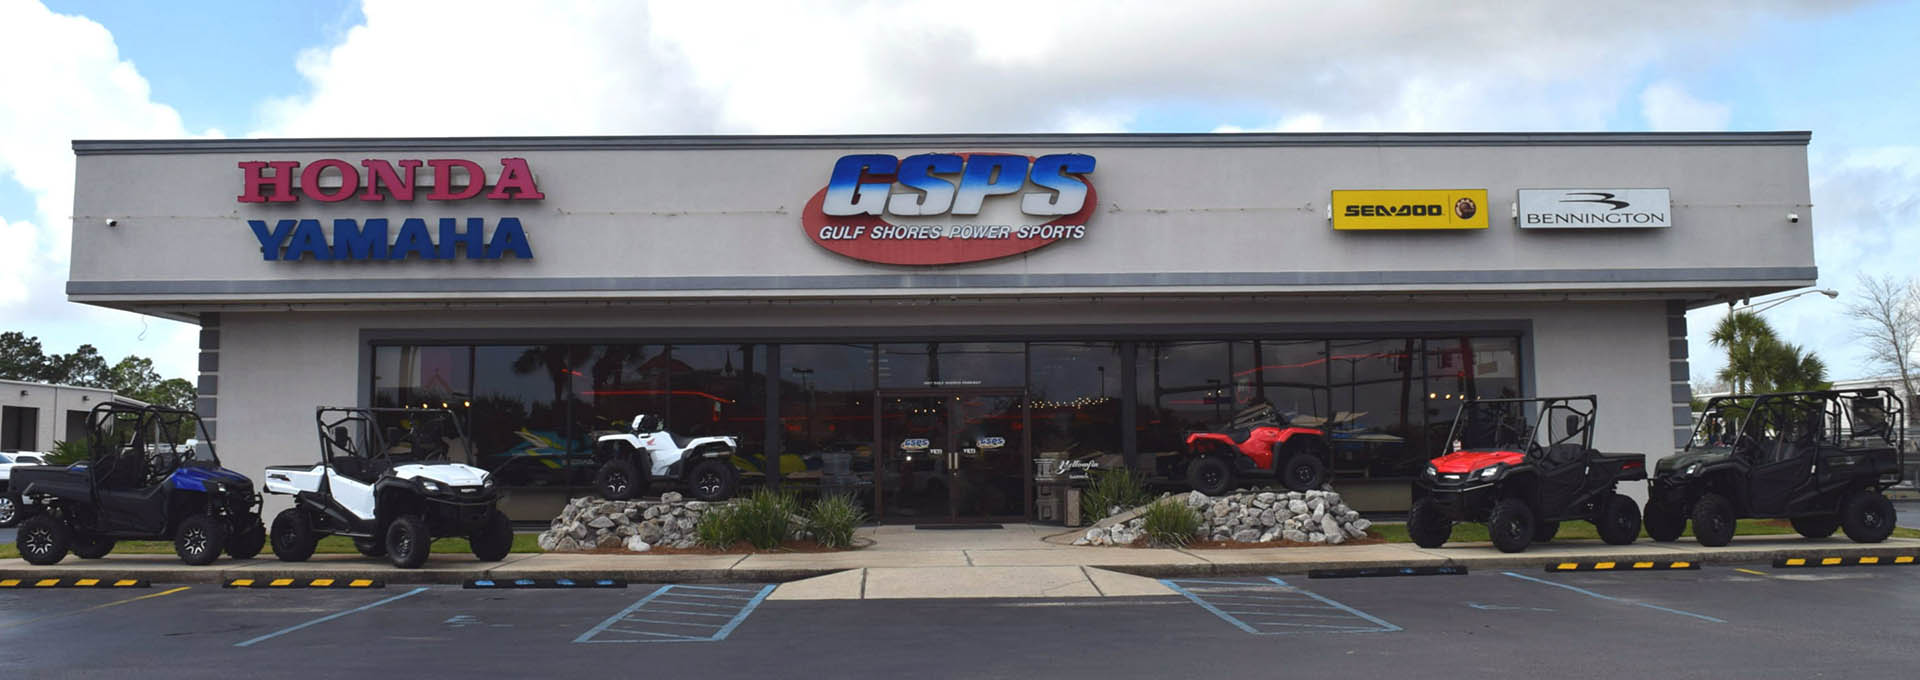 Store front image for the dealership located at Gulf Shores, AL